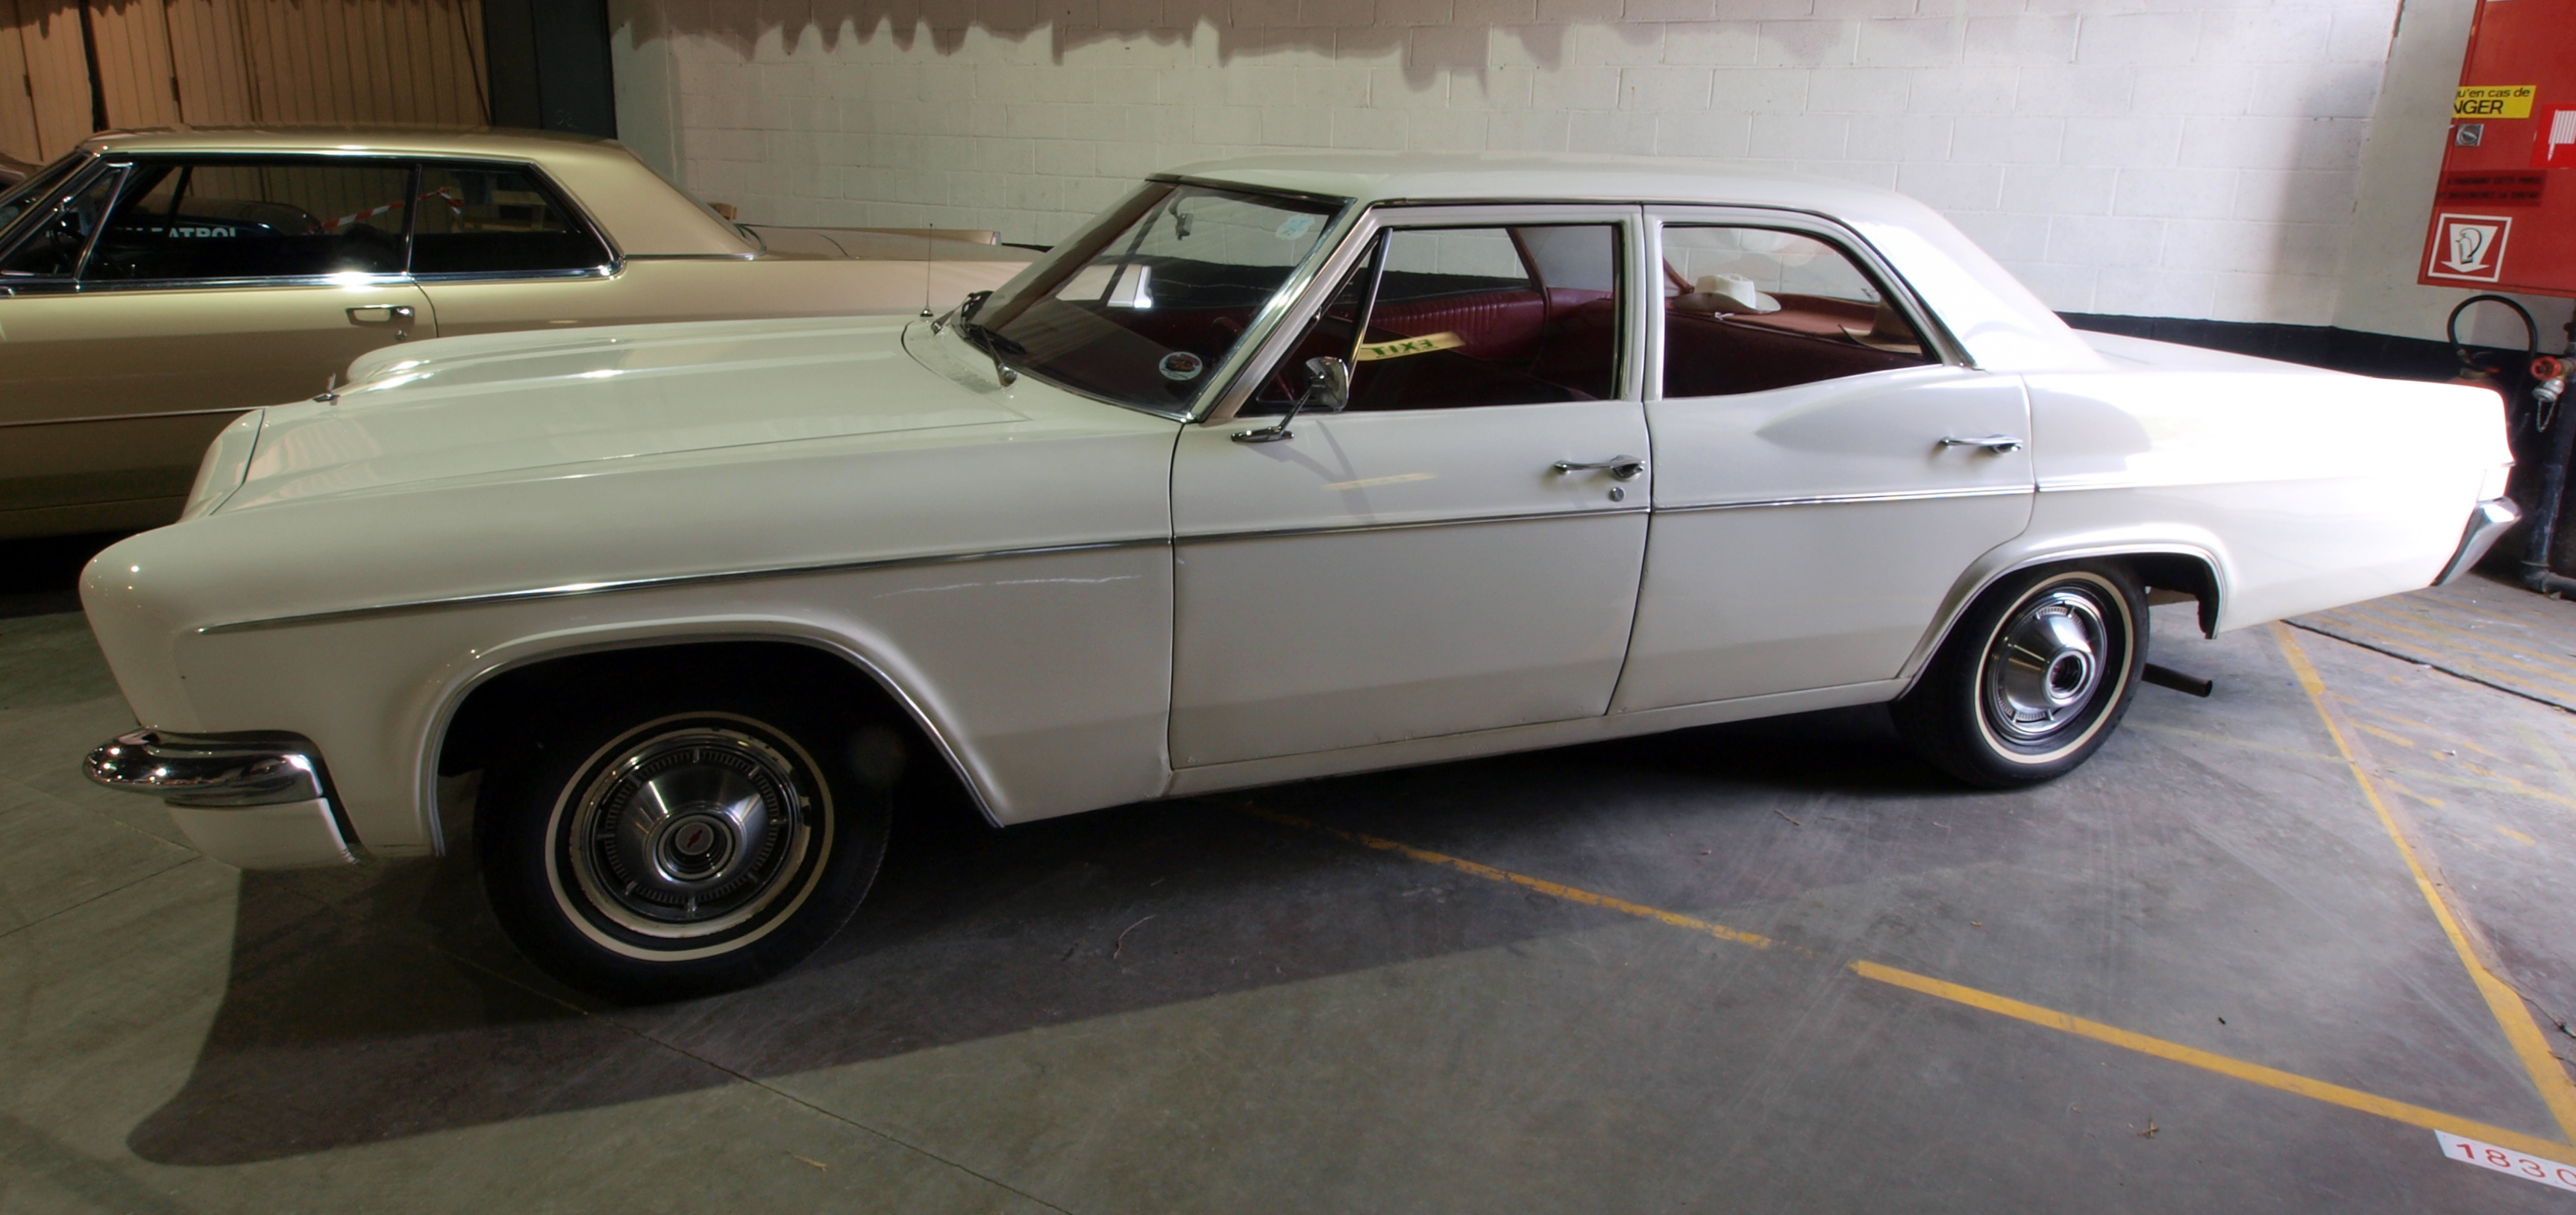 1966 Chevrolet Bel Air Information And Photos Momentcar Chevy For Sale 6